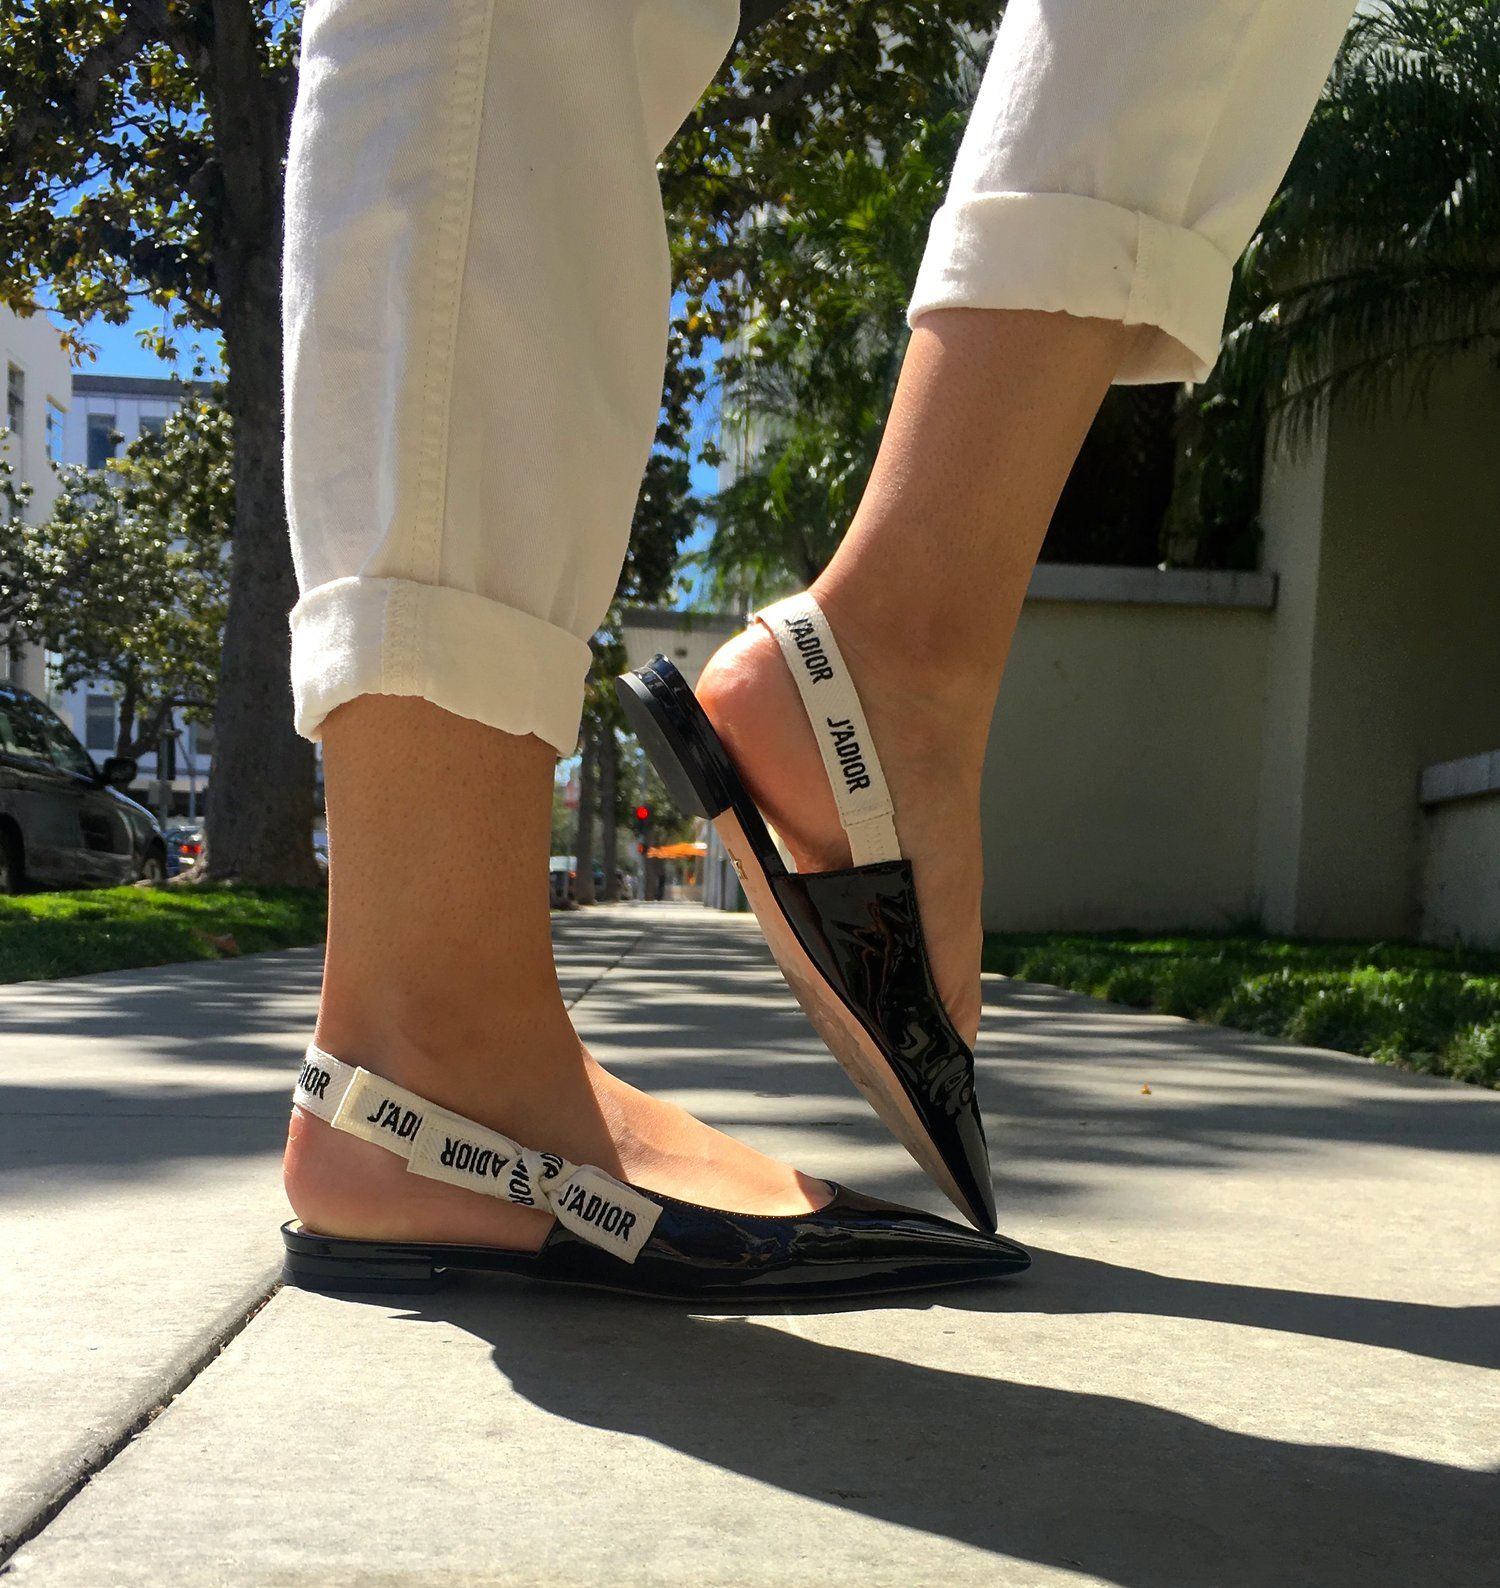 Dior J Adior Flats Dior Shoes Fashion Shoes Classy Shoes Nice Shoes